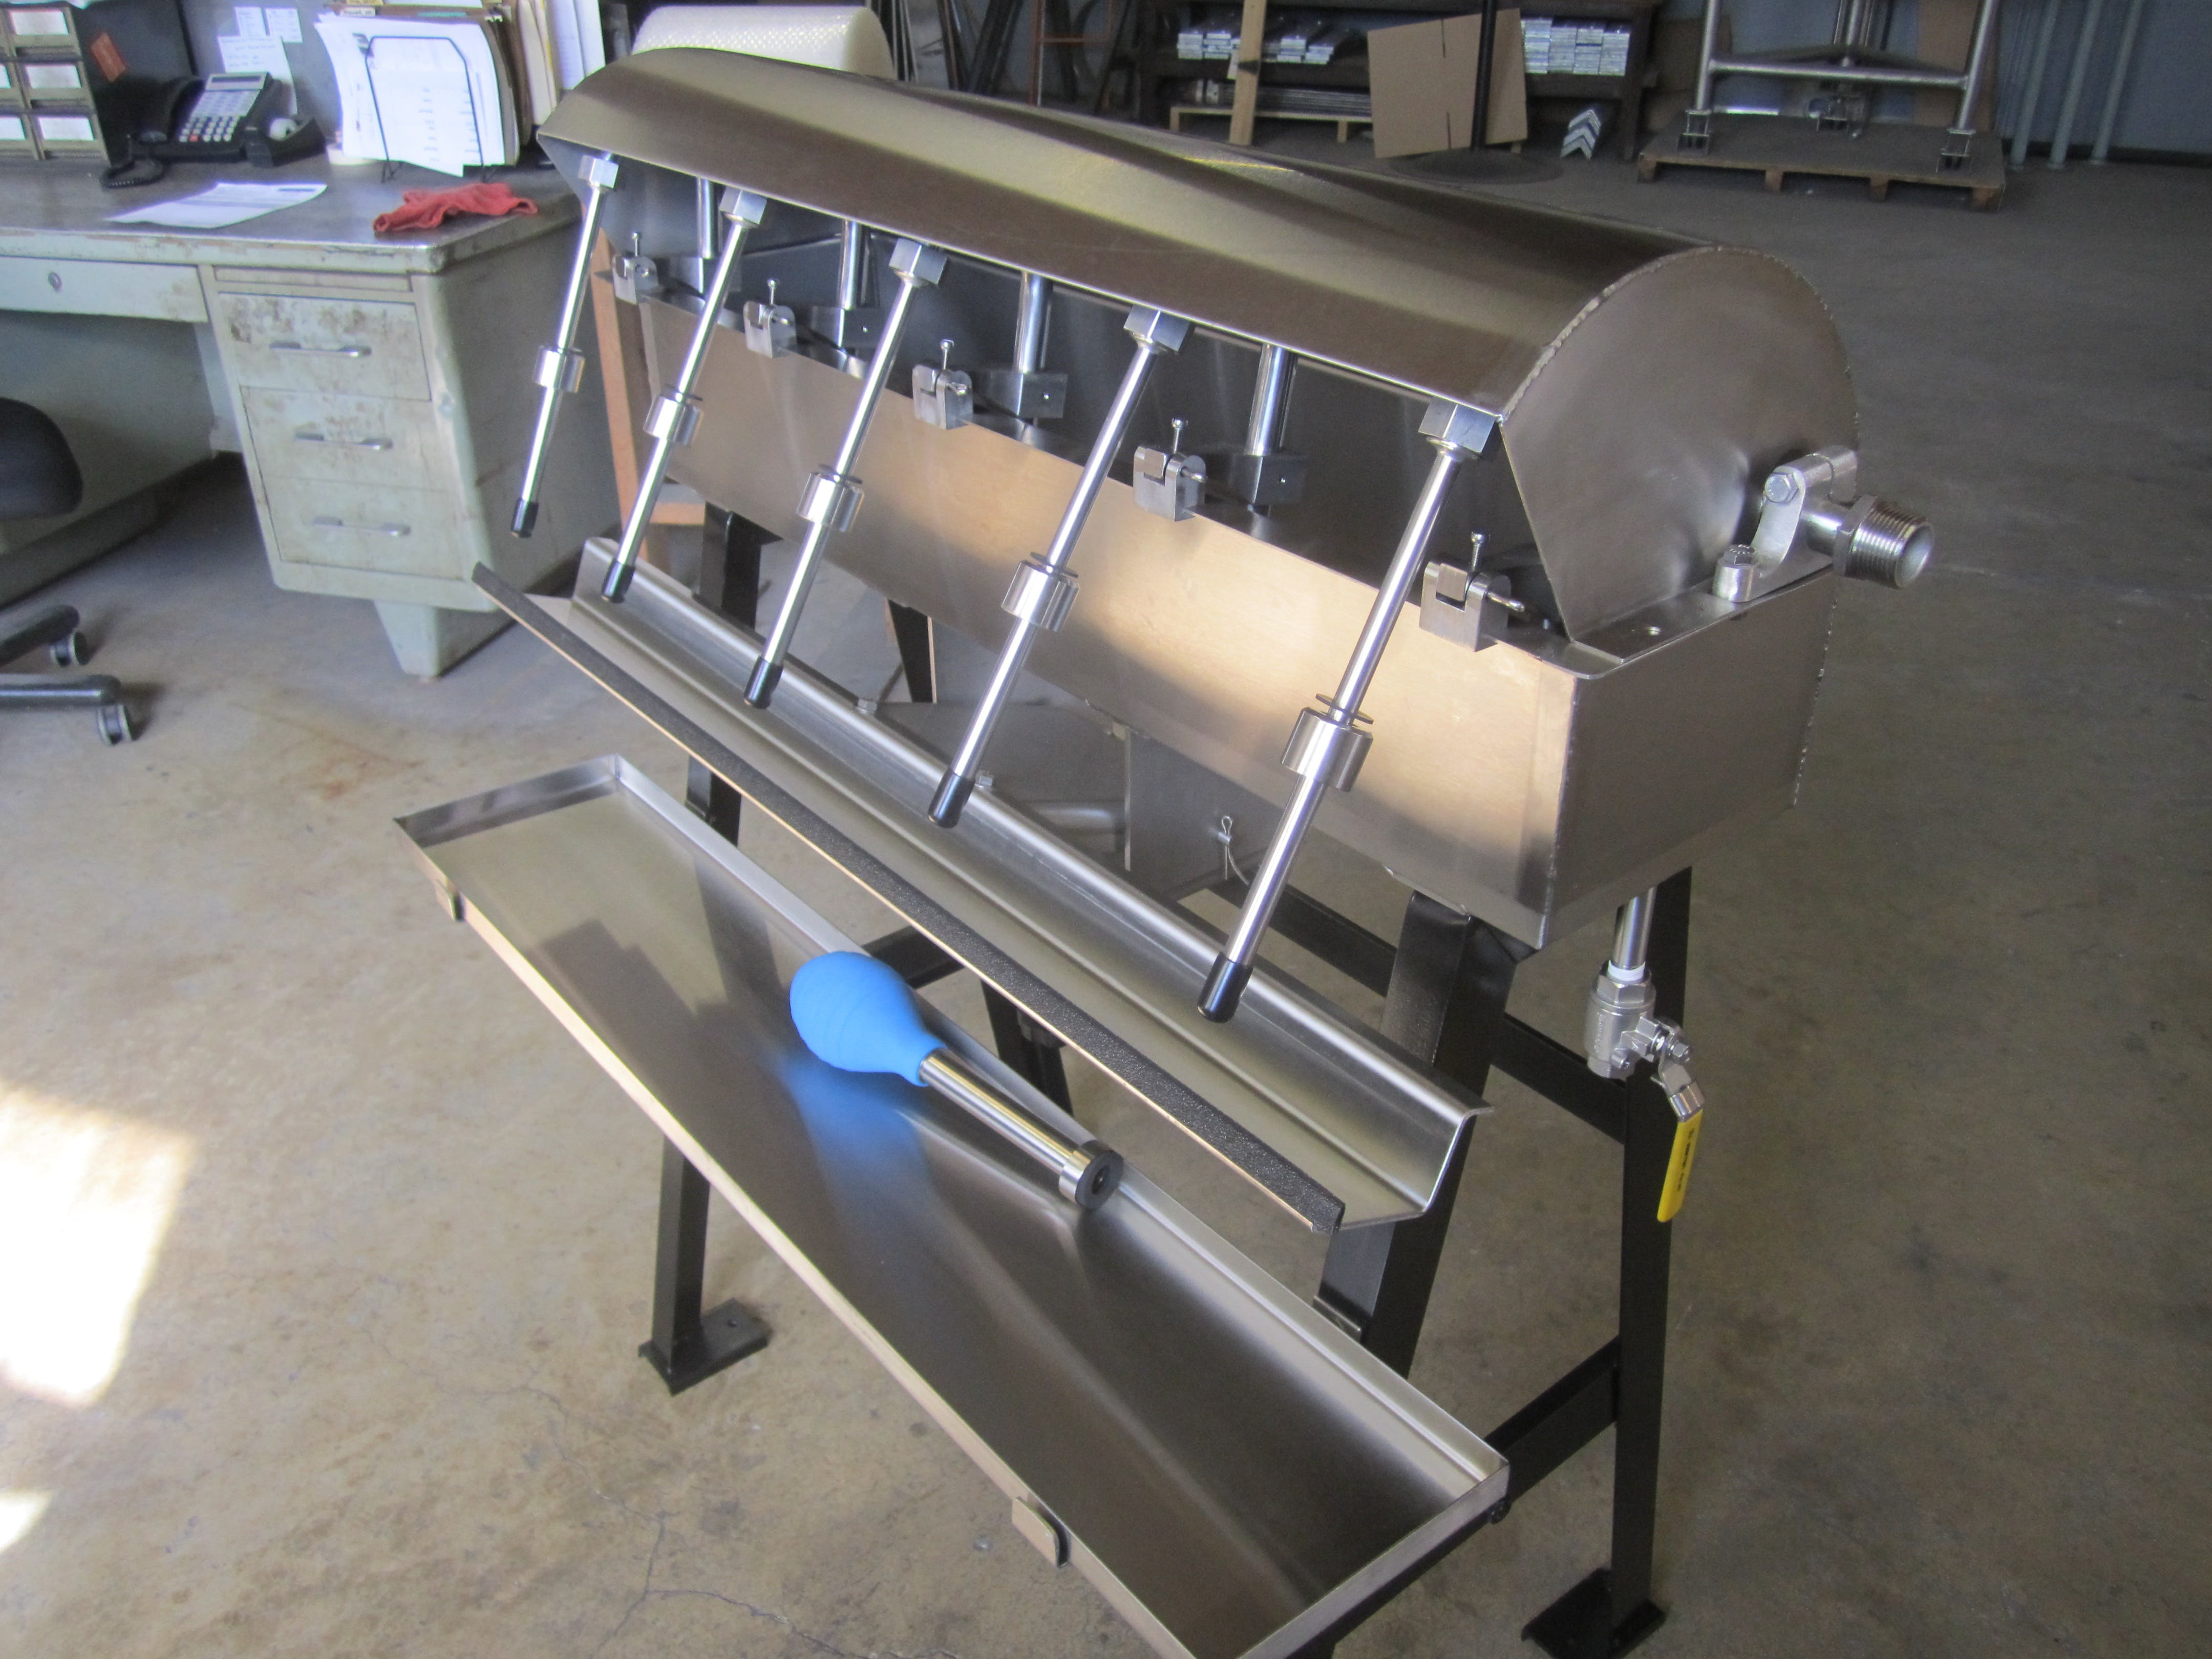 CE-500SF Bottle filler sold by Cleveland Equipment